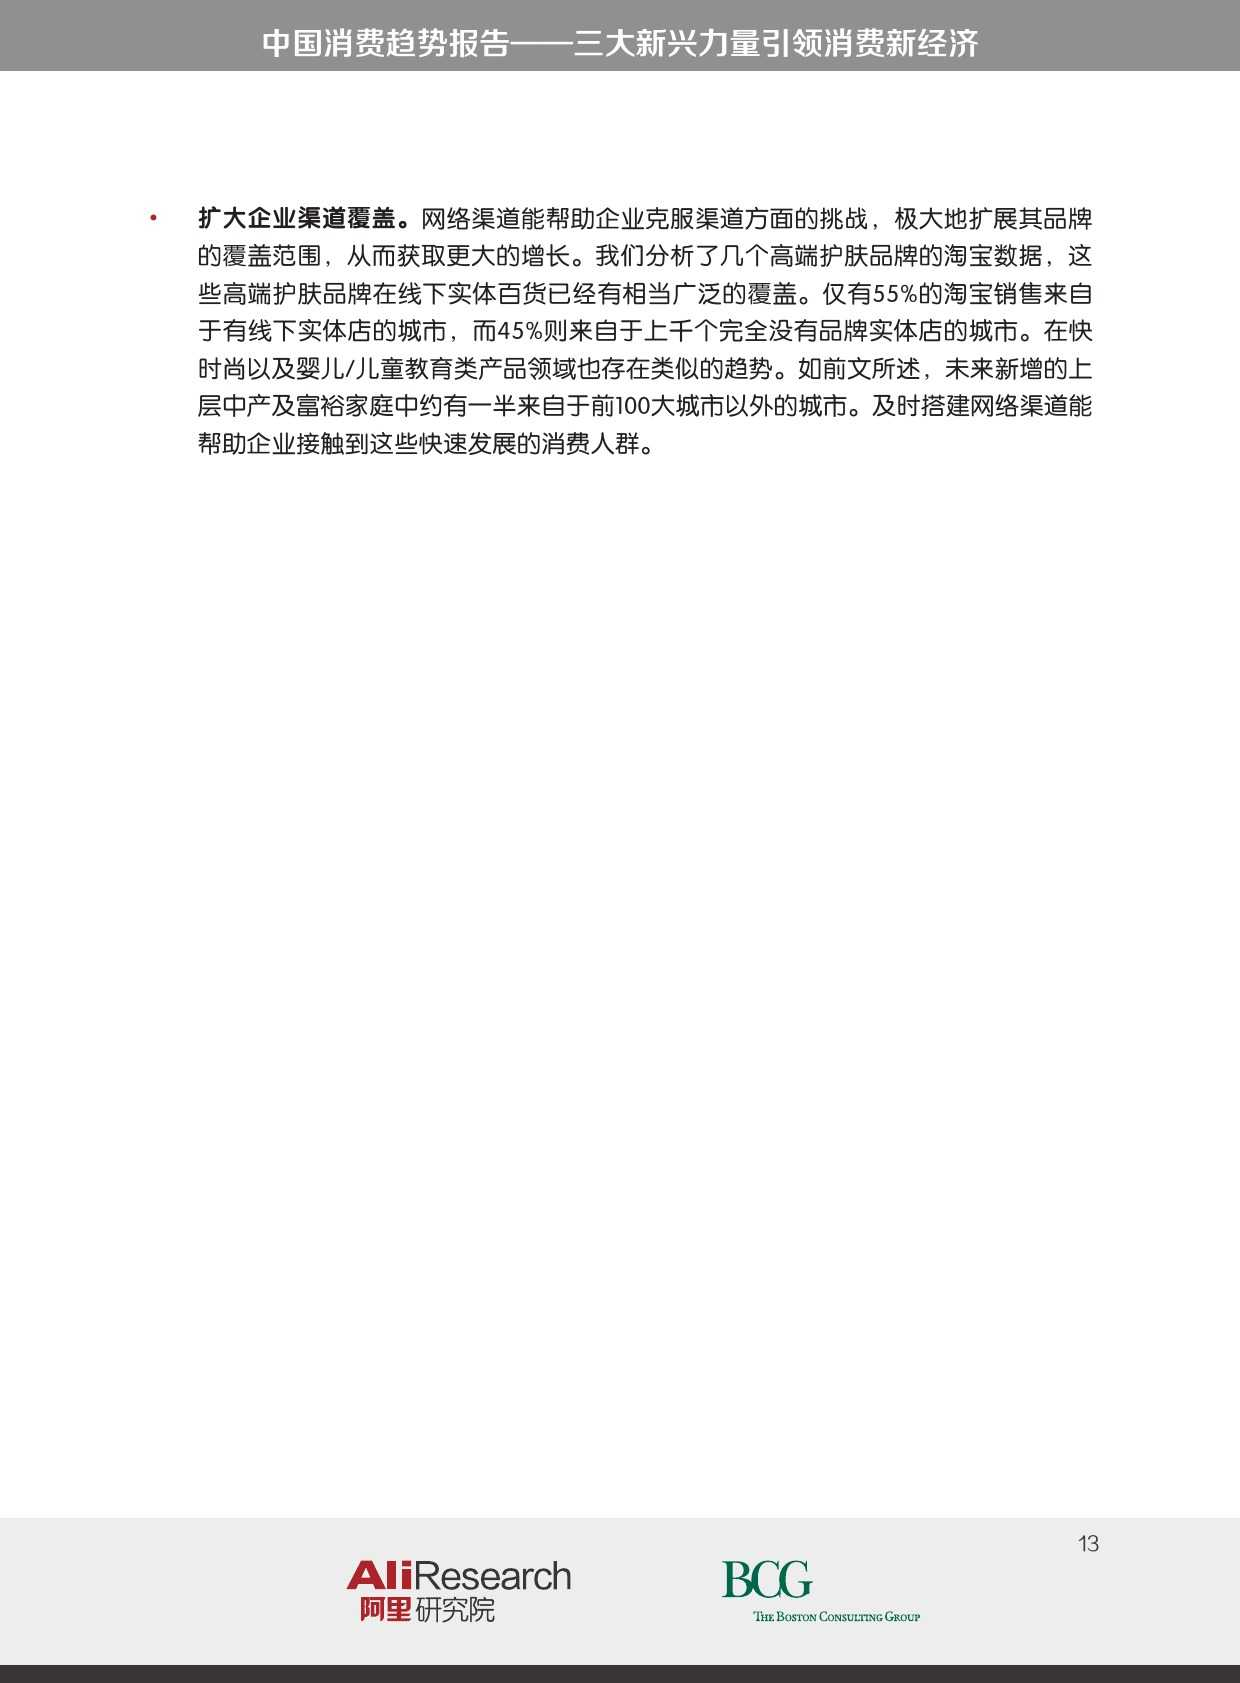 BCG_The_New_China_Playbook_Dec_2015_CHN_000013